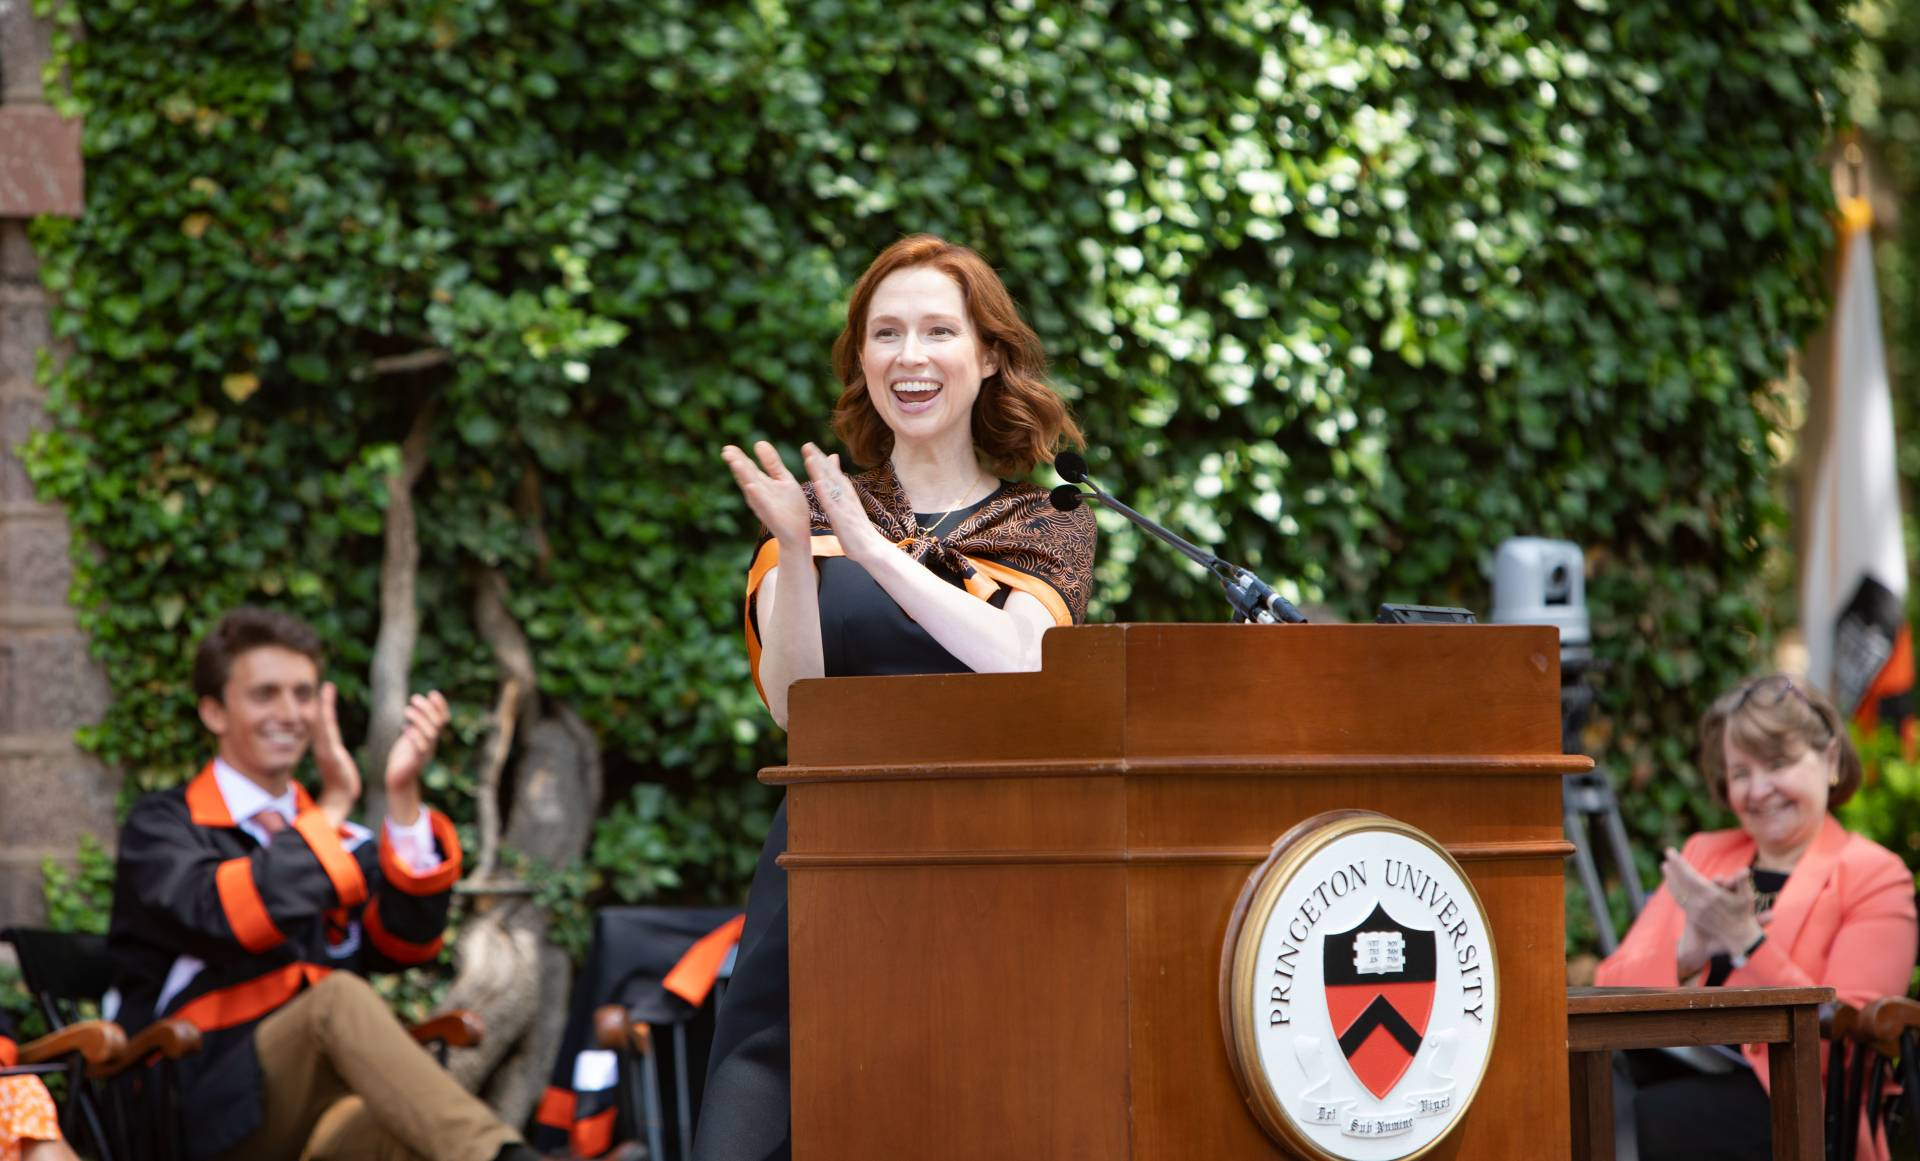 Ellie Kemper claps and laughs at the podium